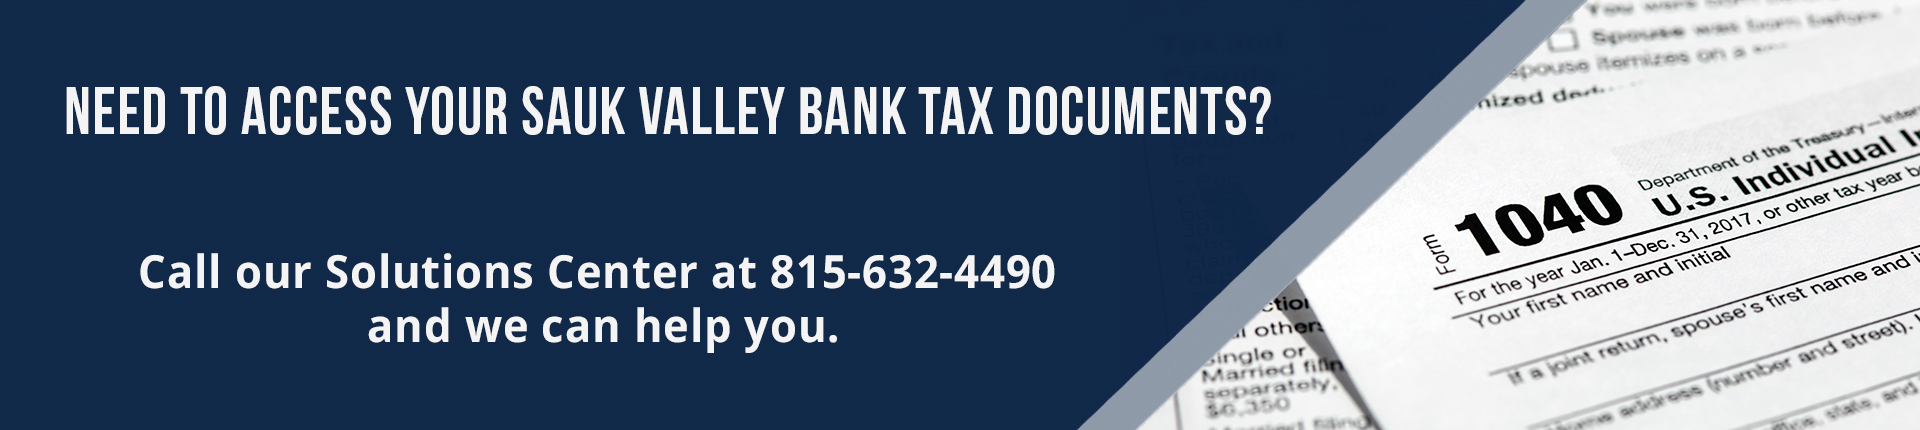 Need a tax form? We canhelp. Call us at 815-632-4490